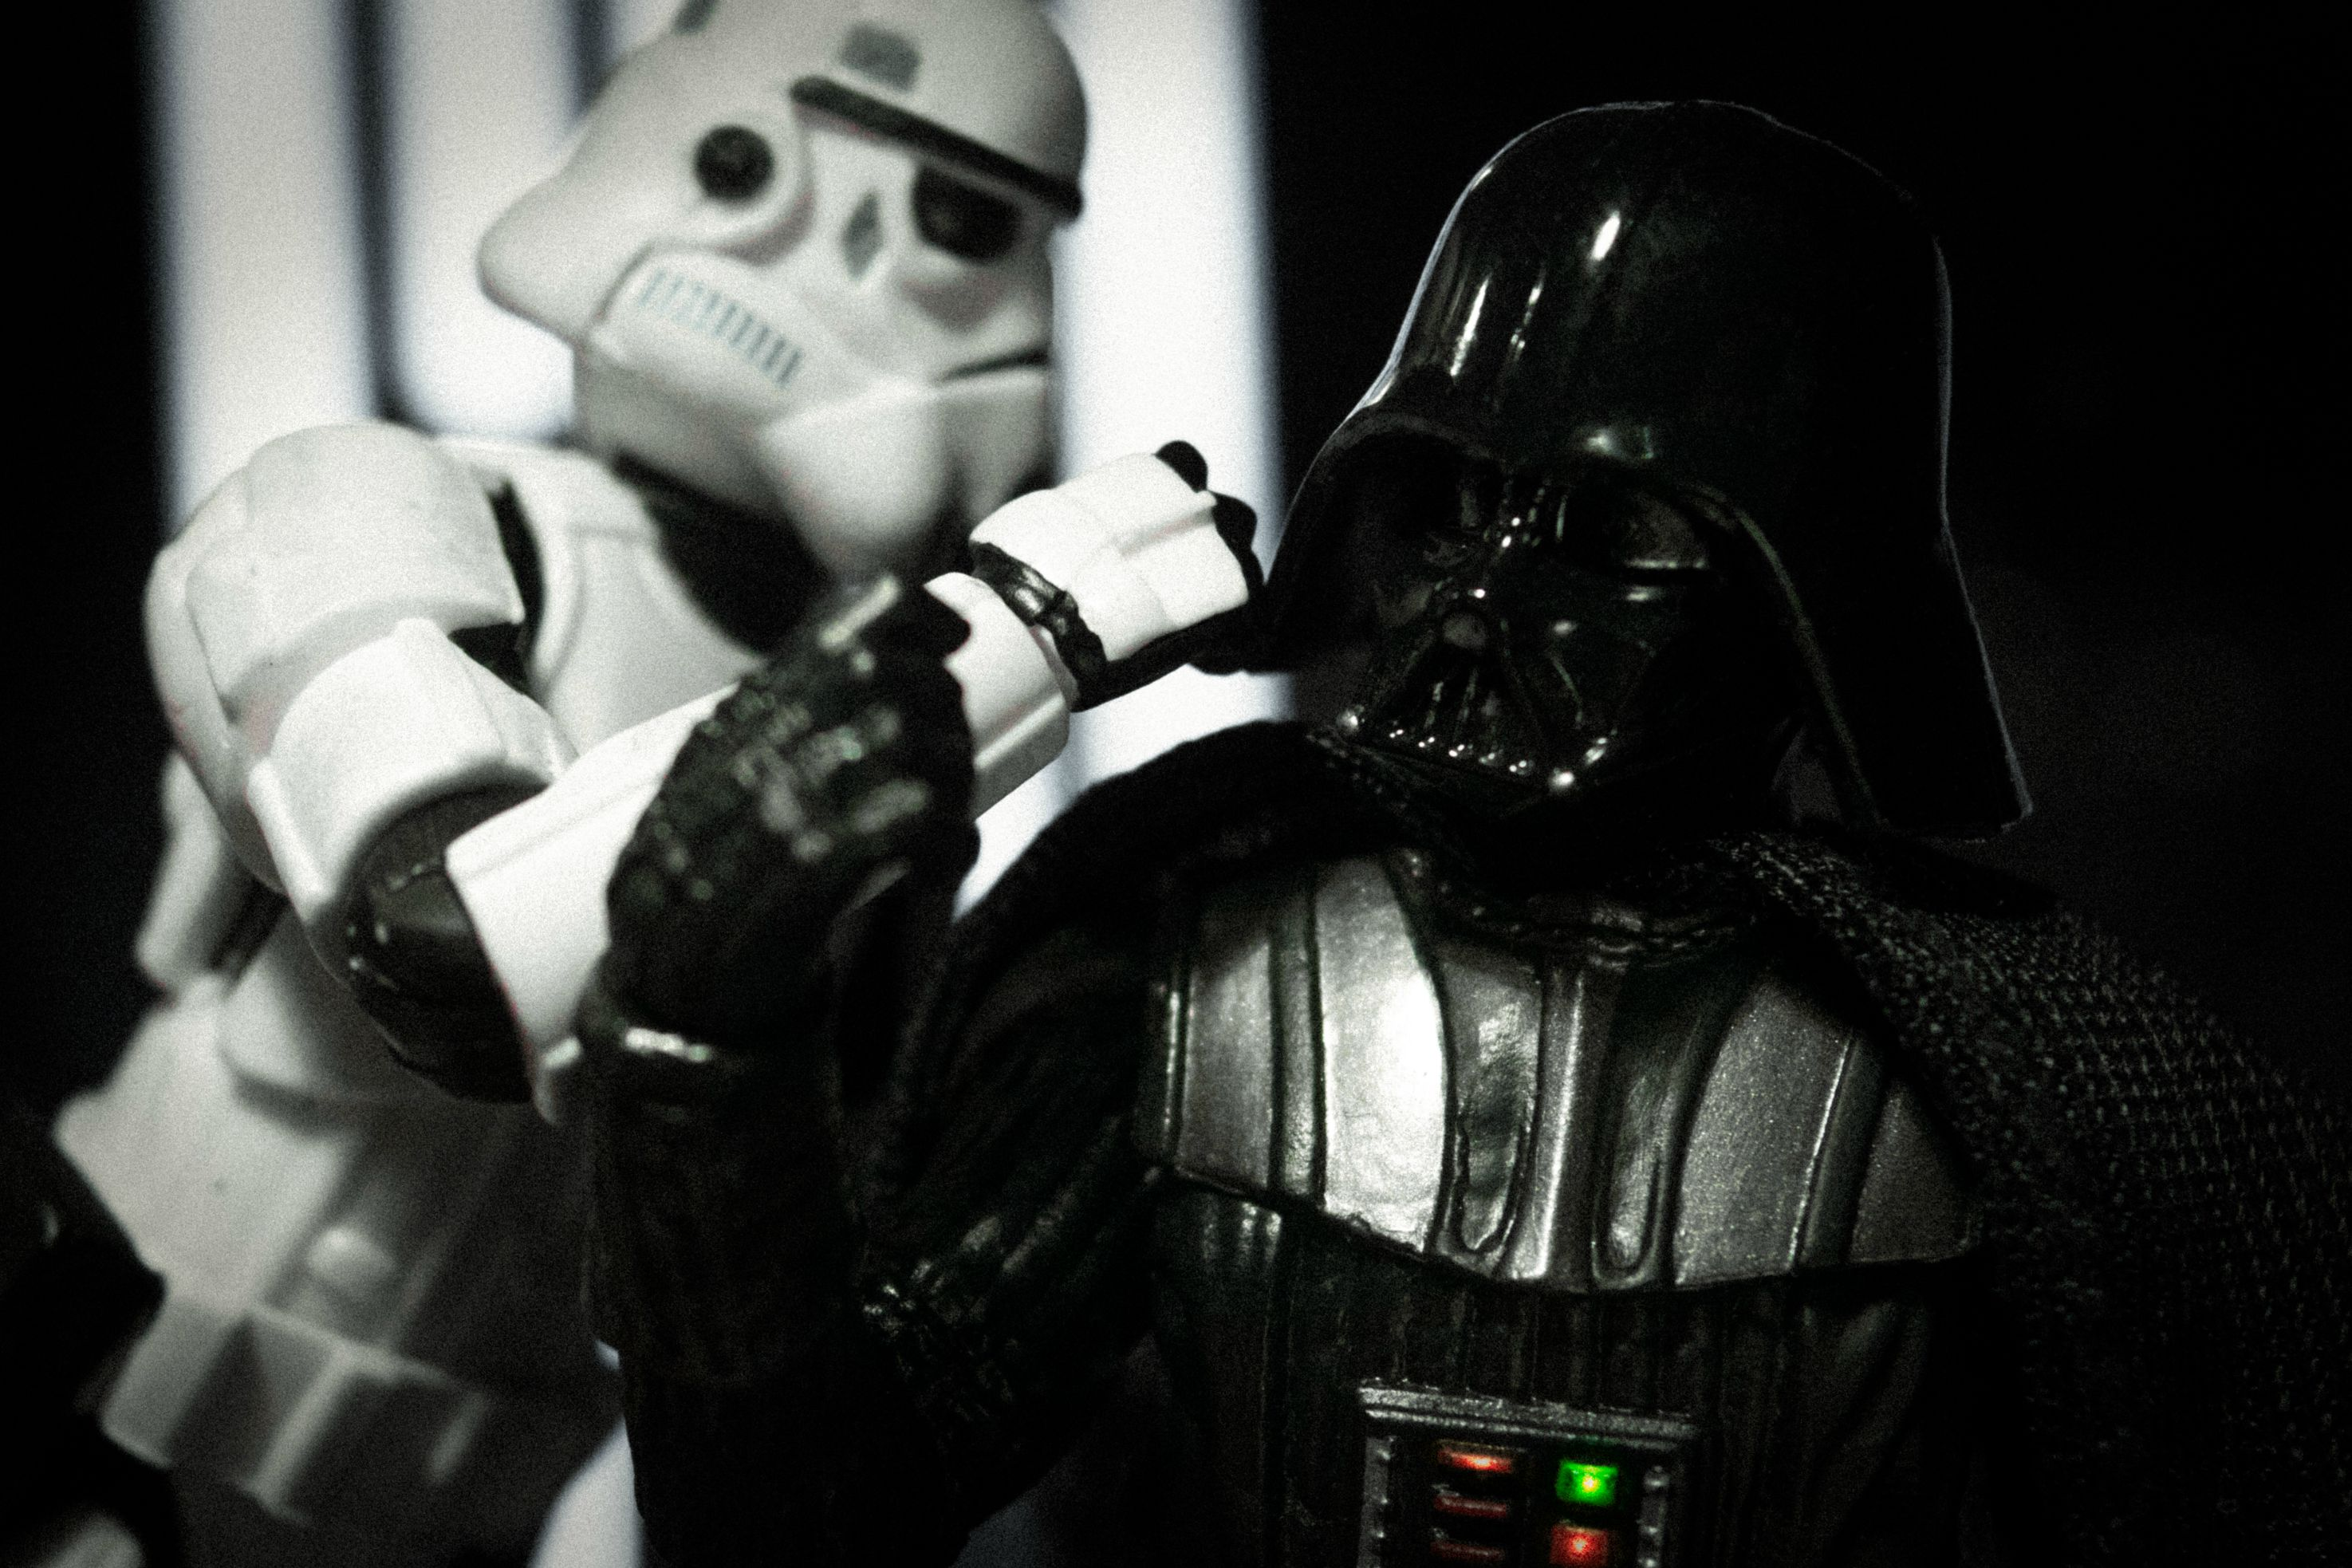 Famous Movie Scenes Recreated With Star Wars Toys